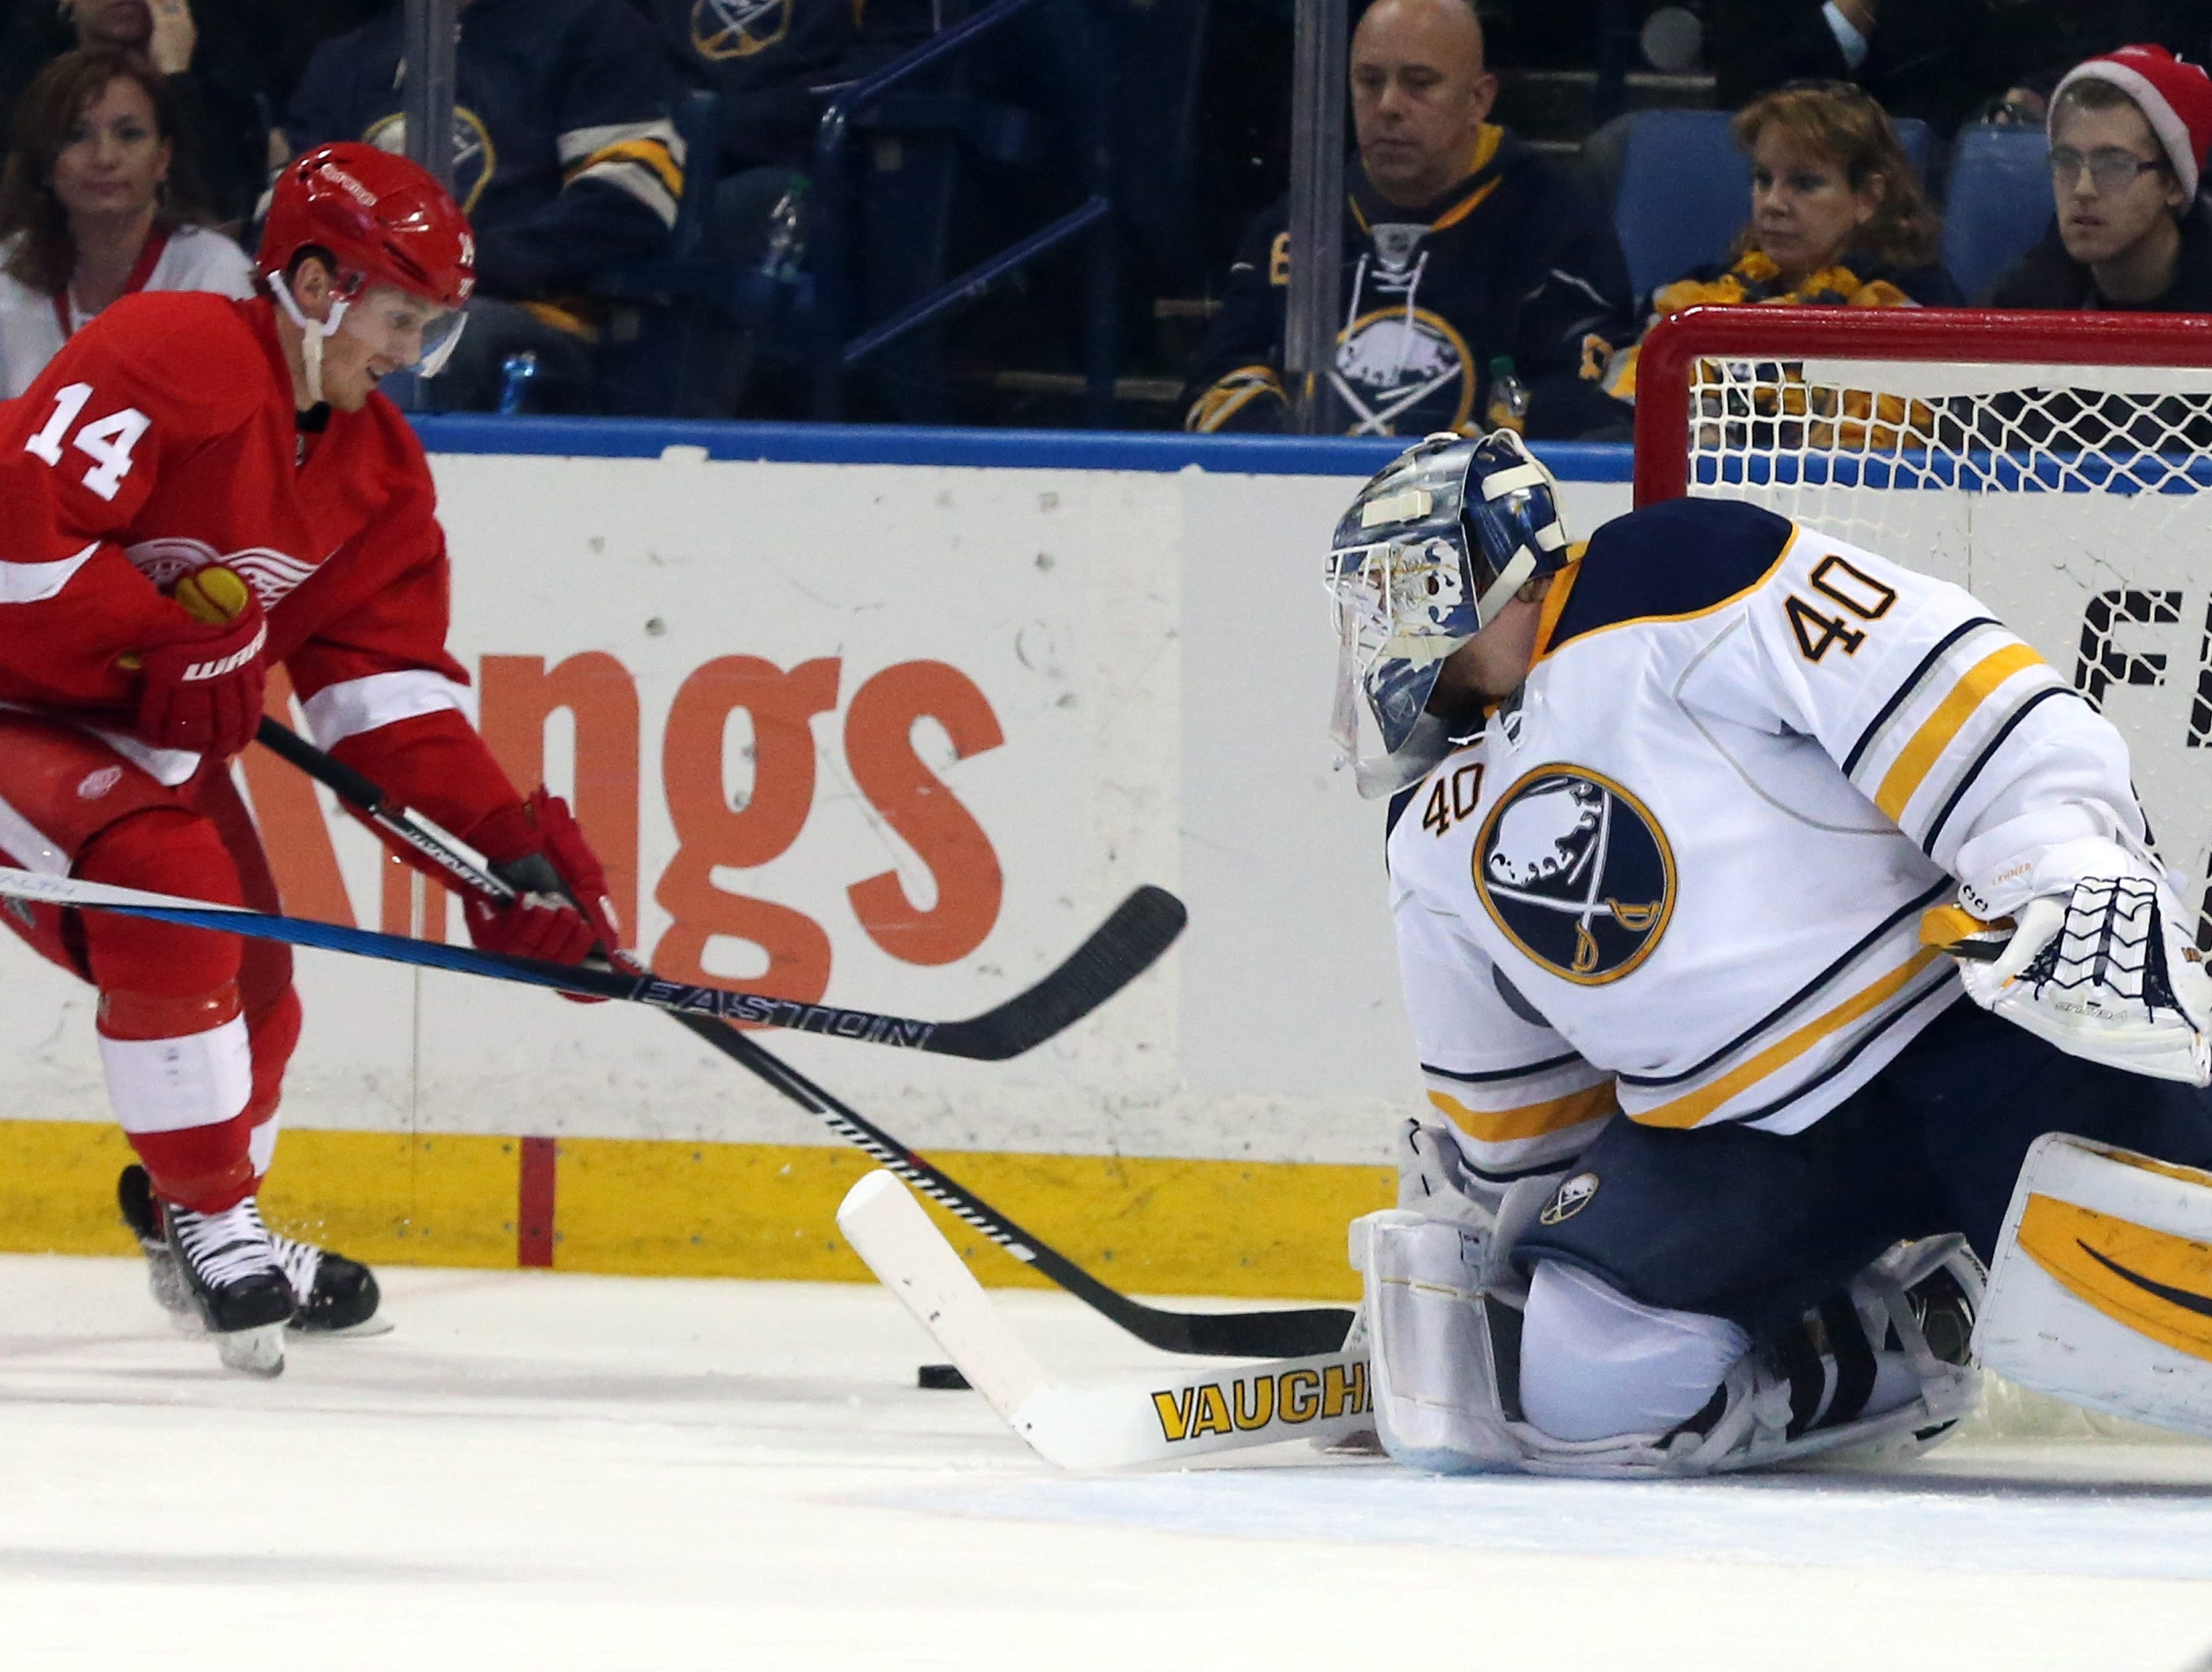 Sabres goalie Robin Lehner makes a save against a shot from Red Wings center Gustav Nyquist in the first period on Friday.